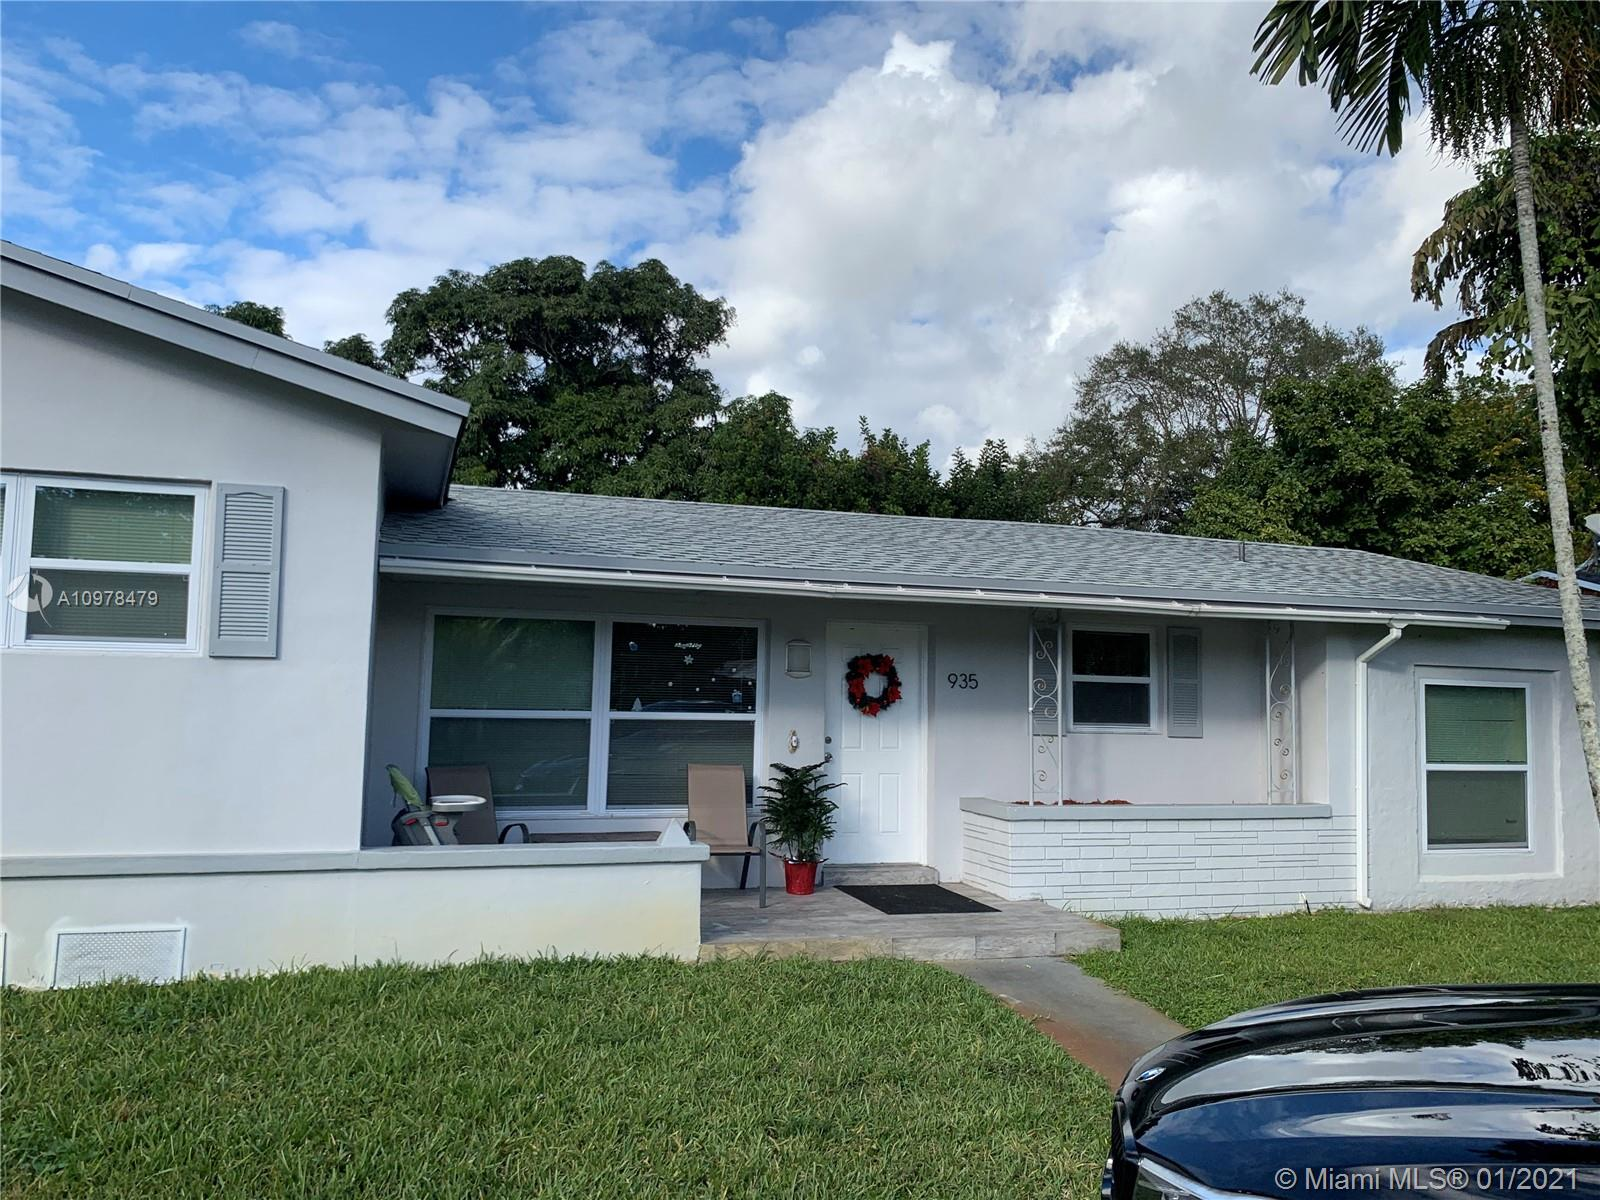 Listing Details for 935 149th St, North Miami, FL 33161